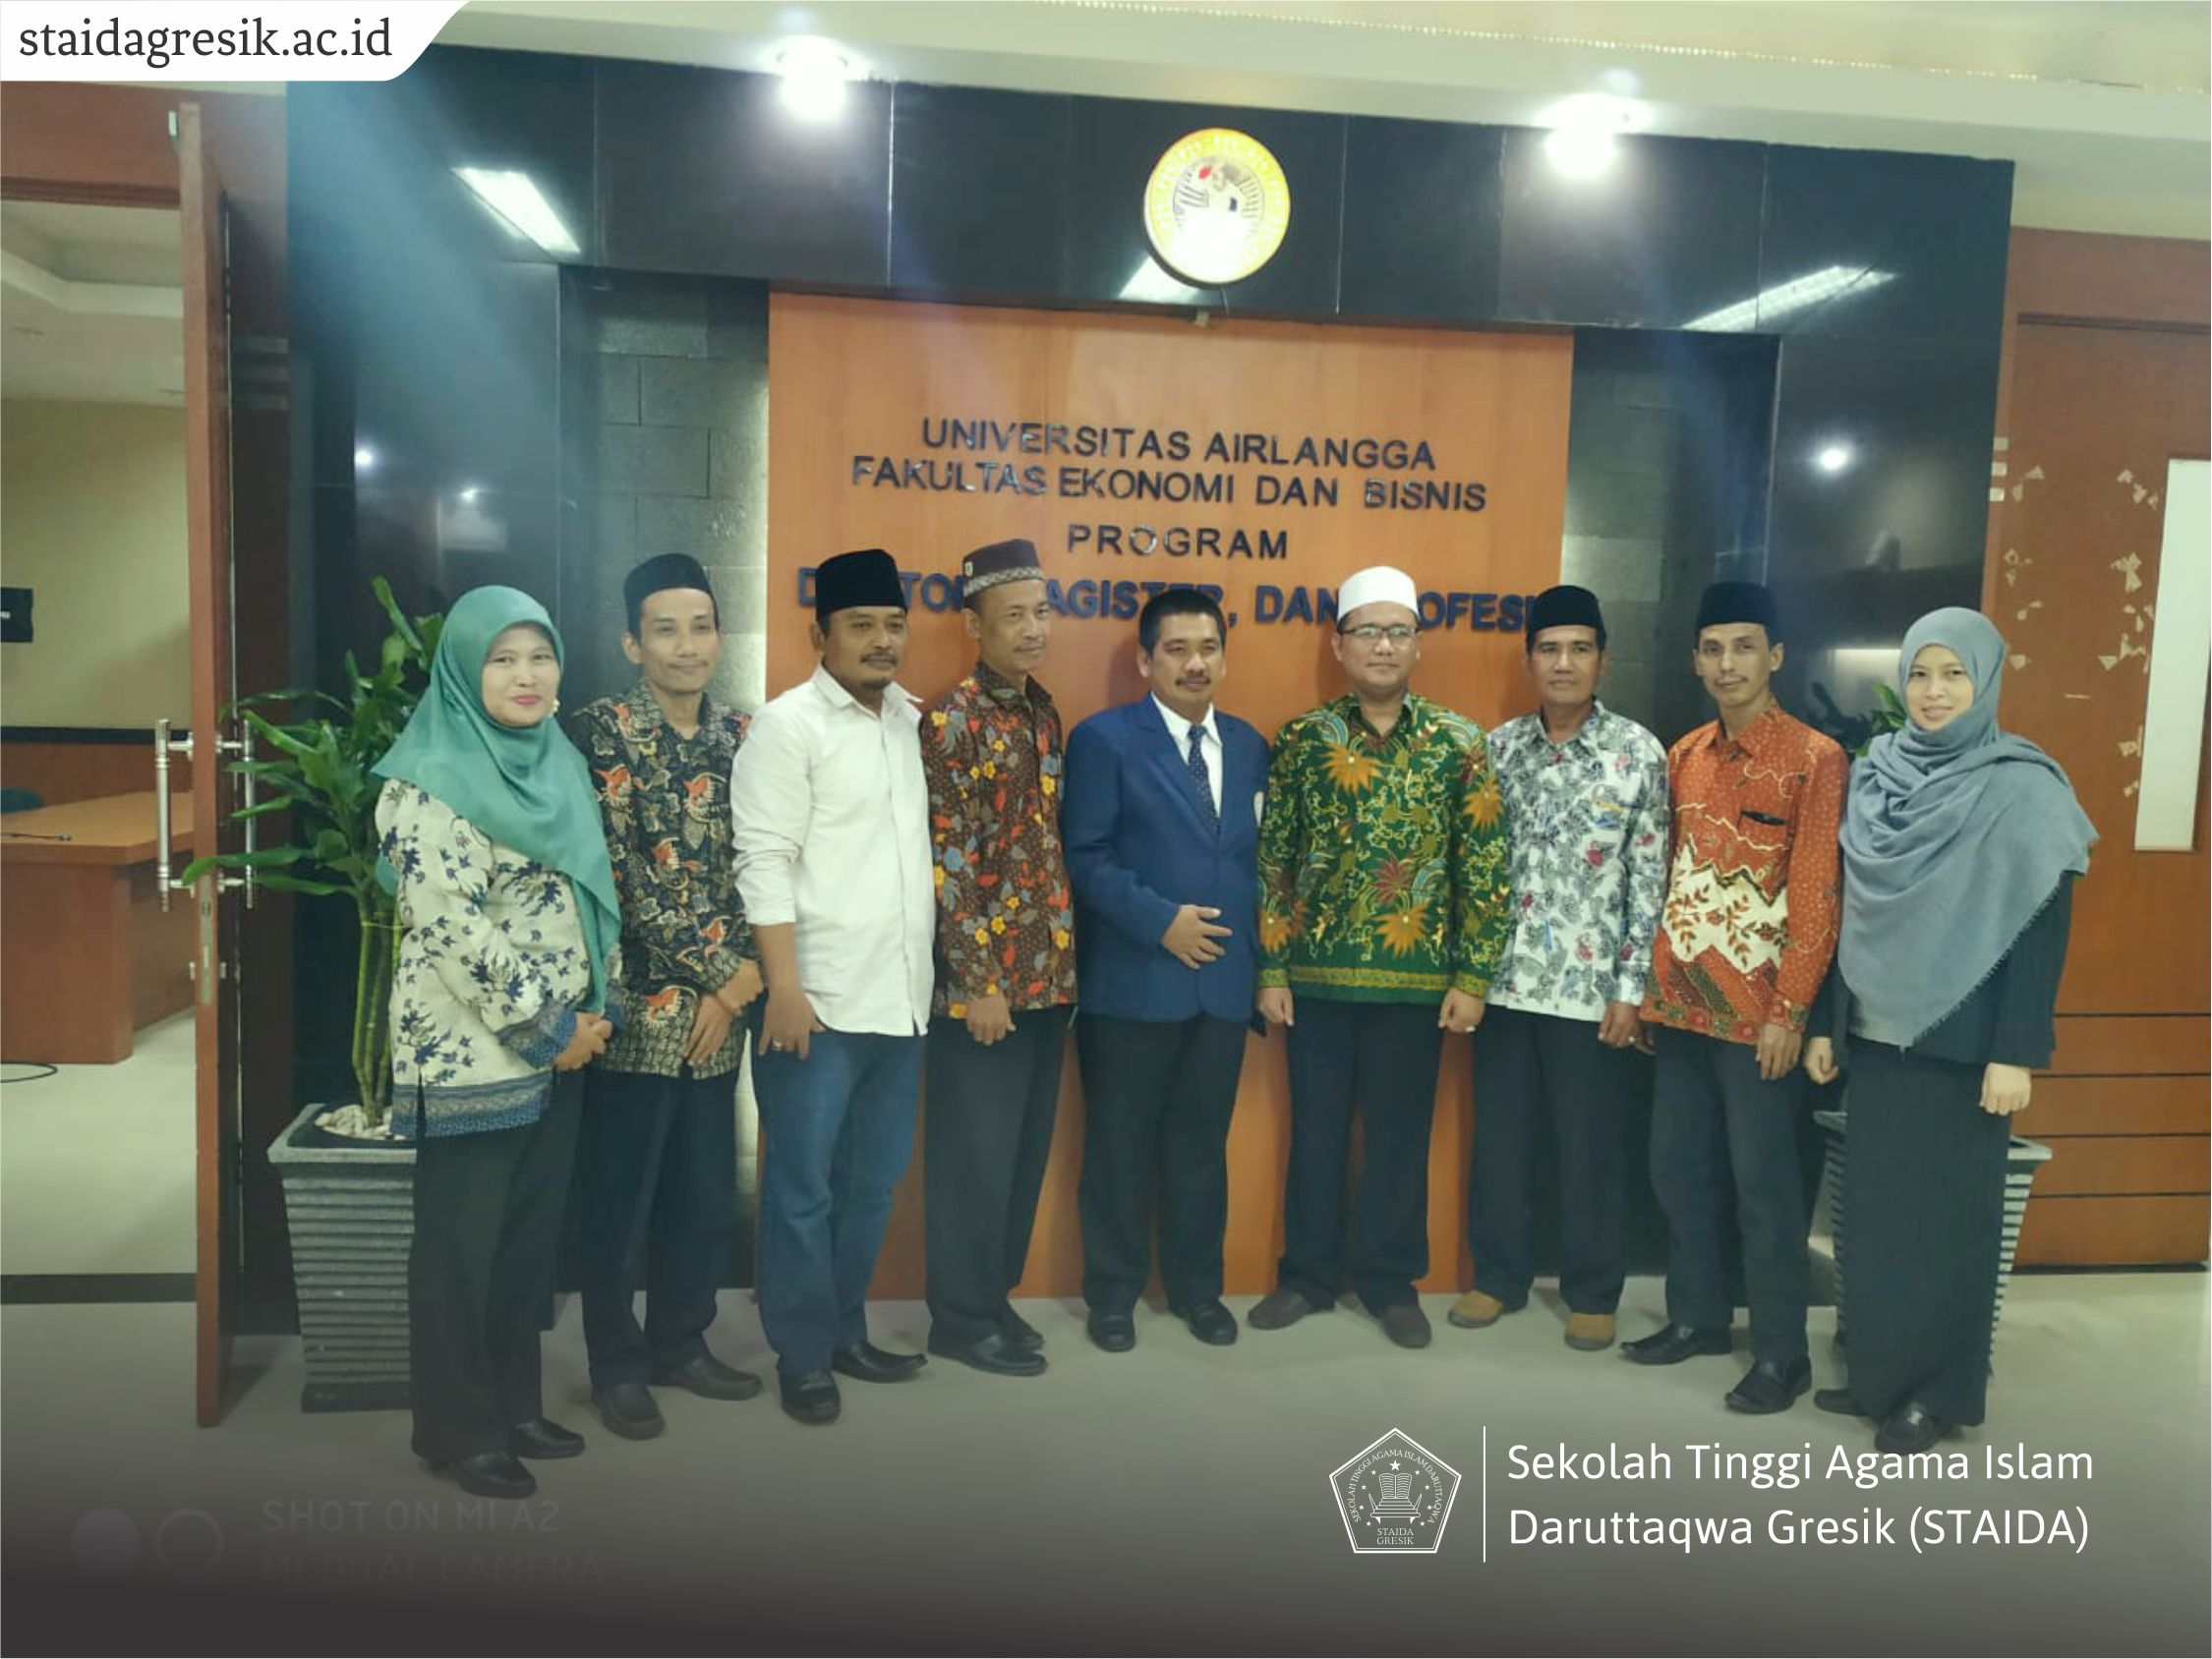 Chairperson of STAI Daruttaqwa Gresik Wins Doctoral Degree at Airlangga University in Surabaya